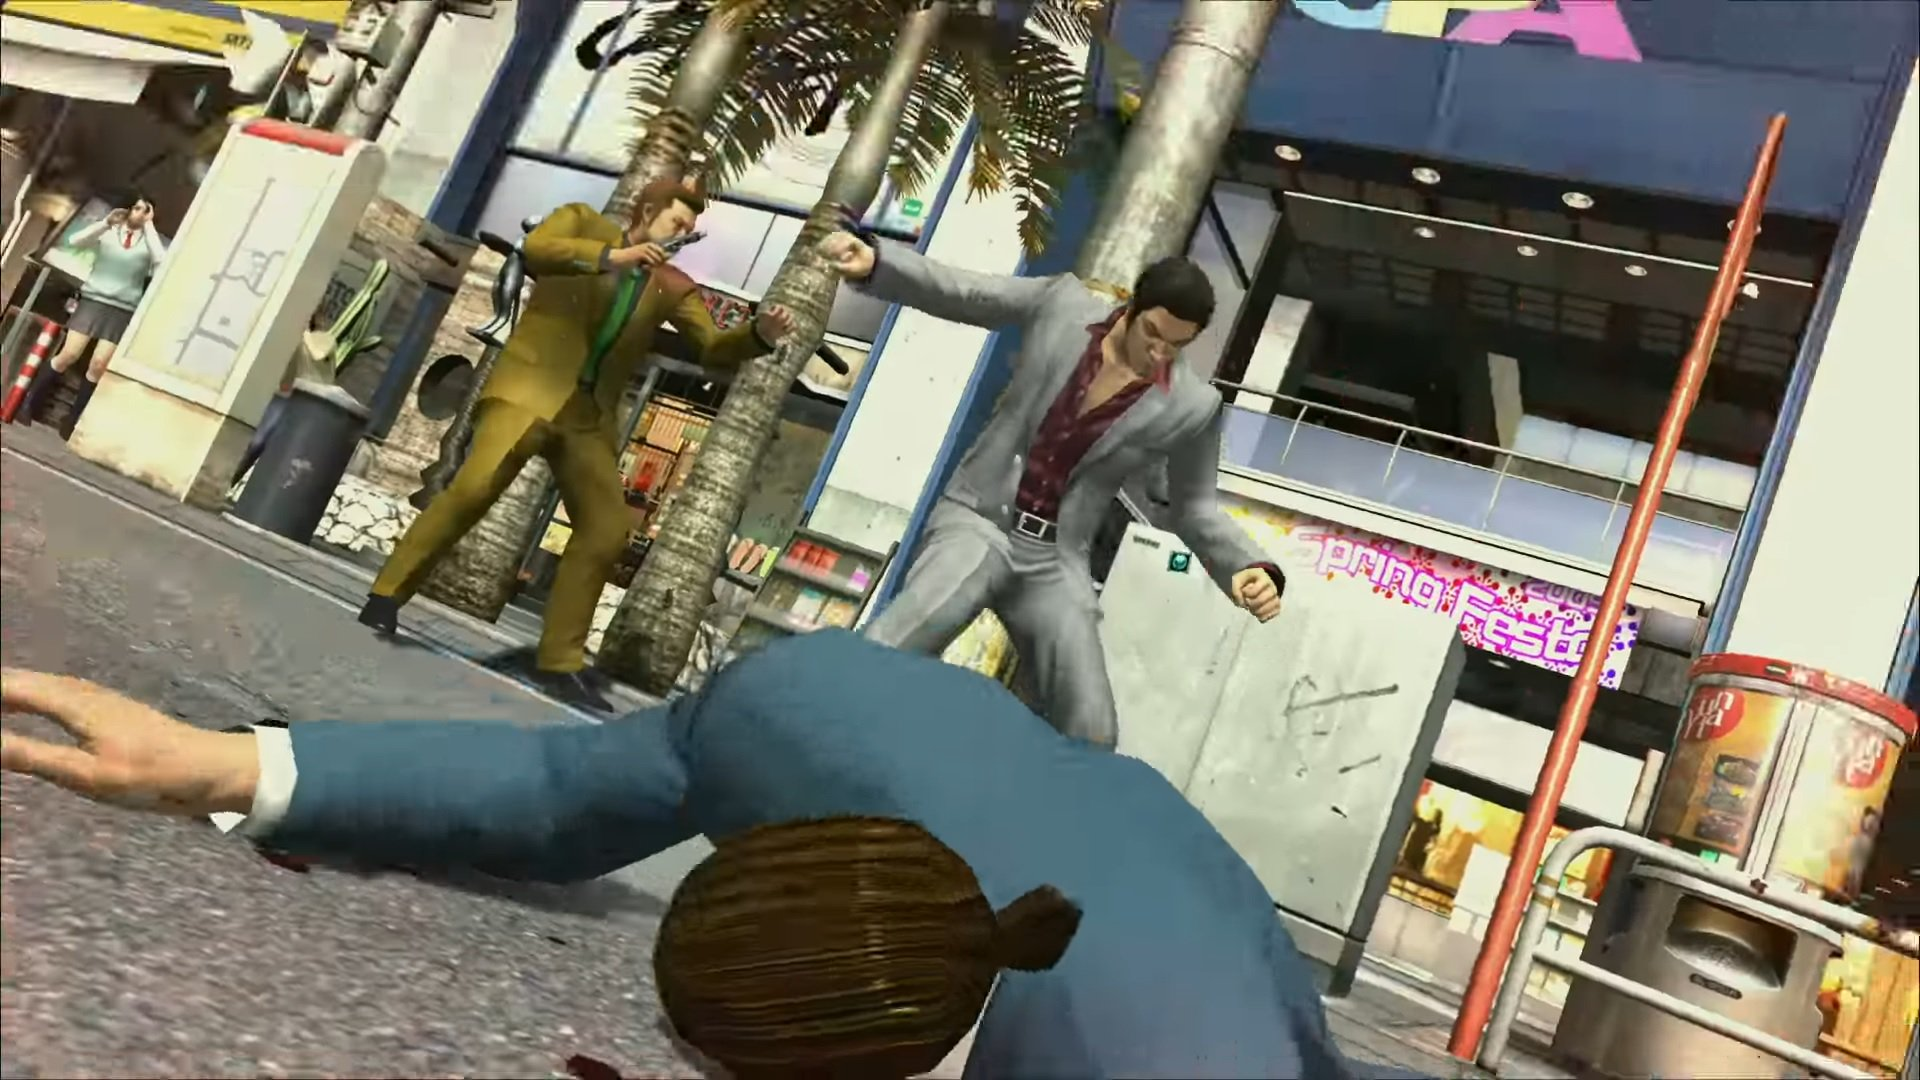 Here is an extended look at Yakuza 3 on PS4 screenshot